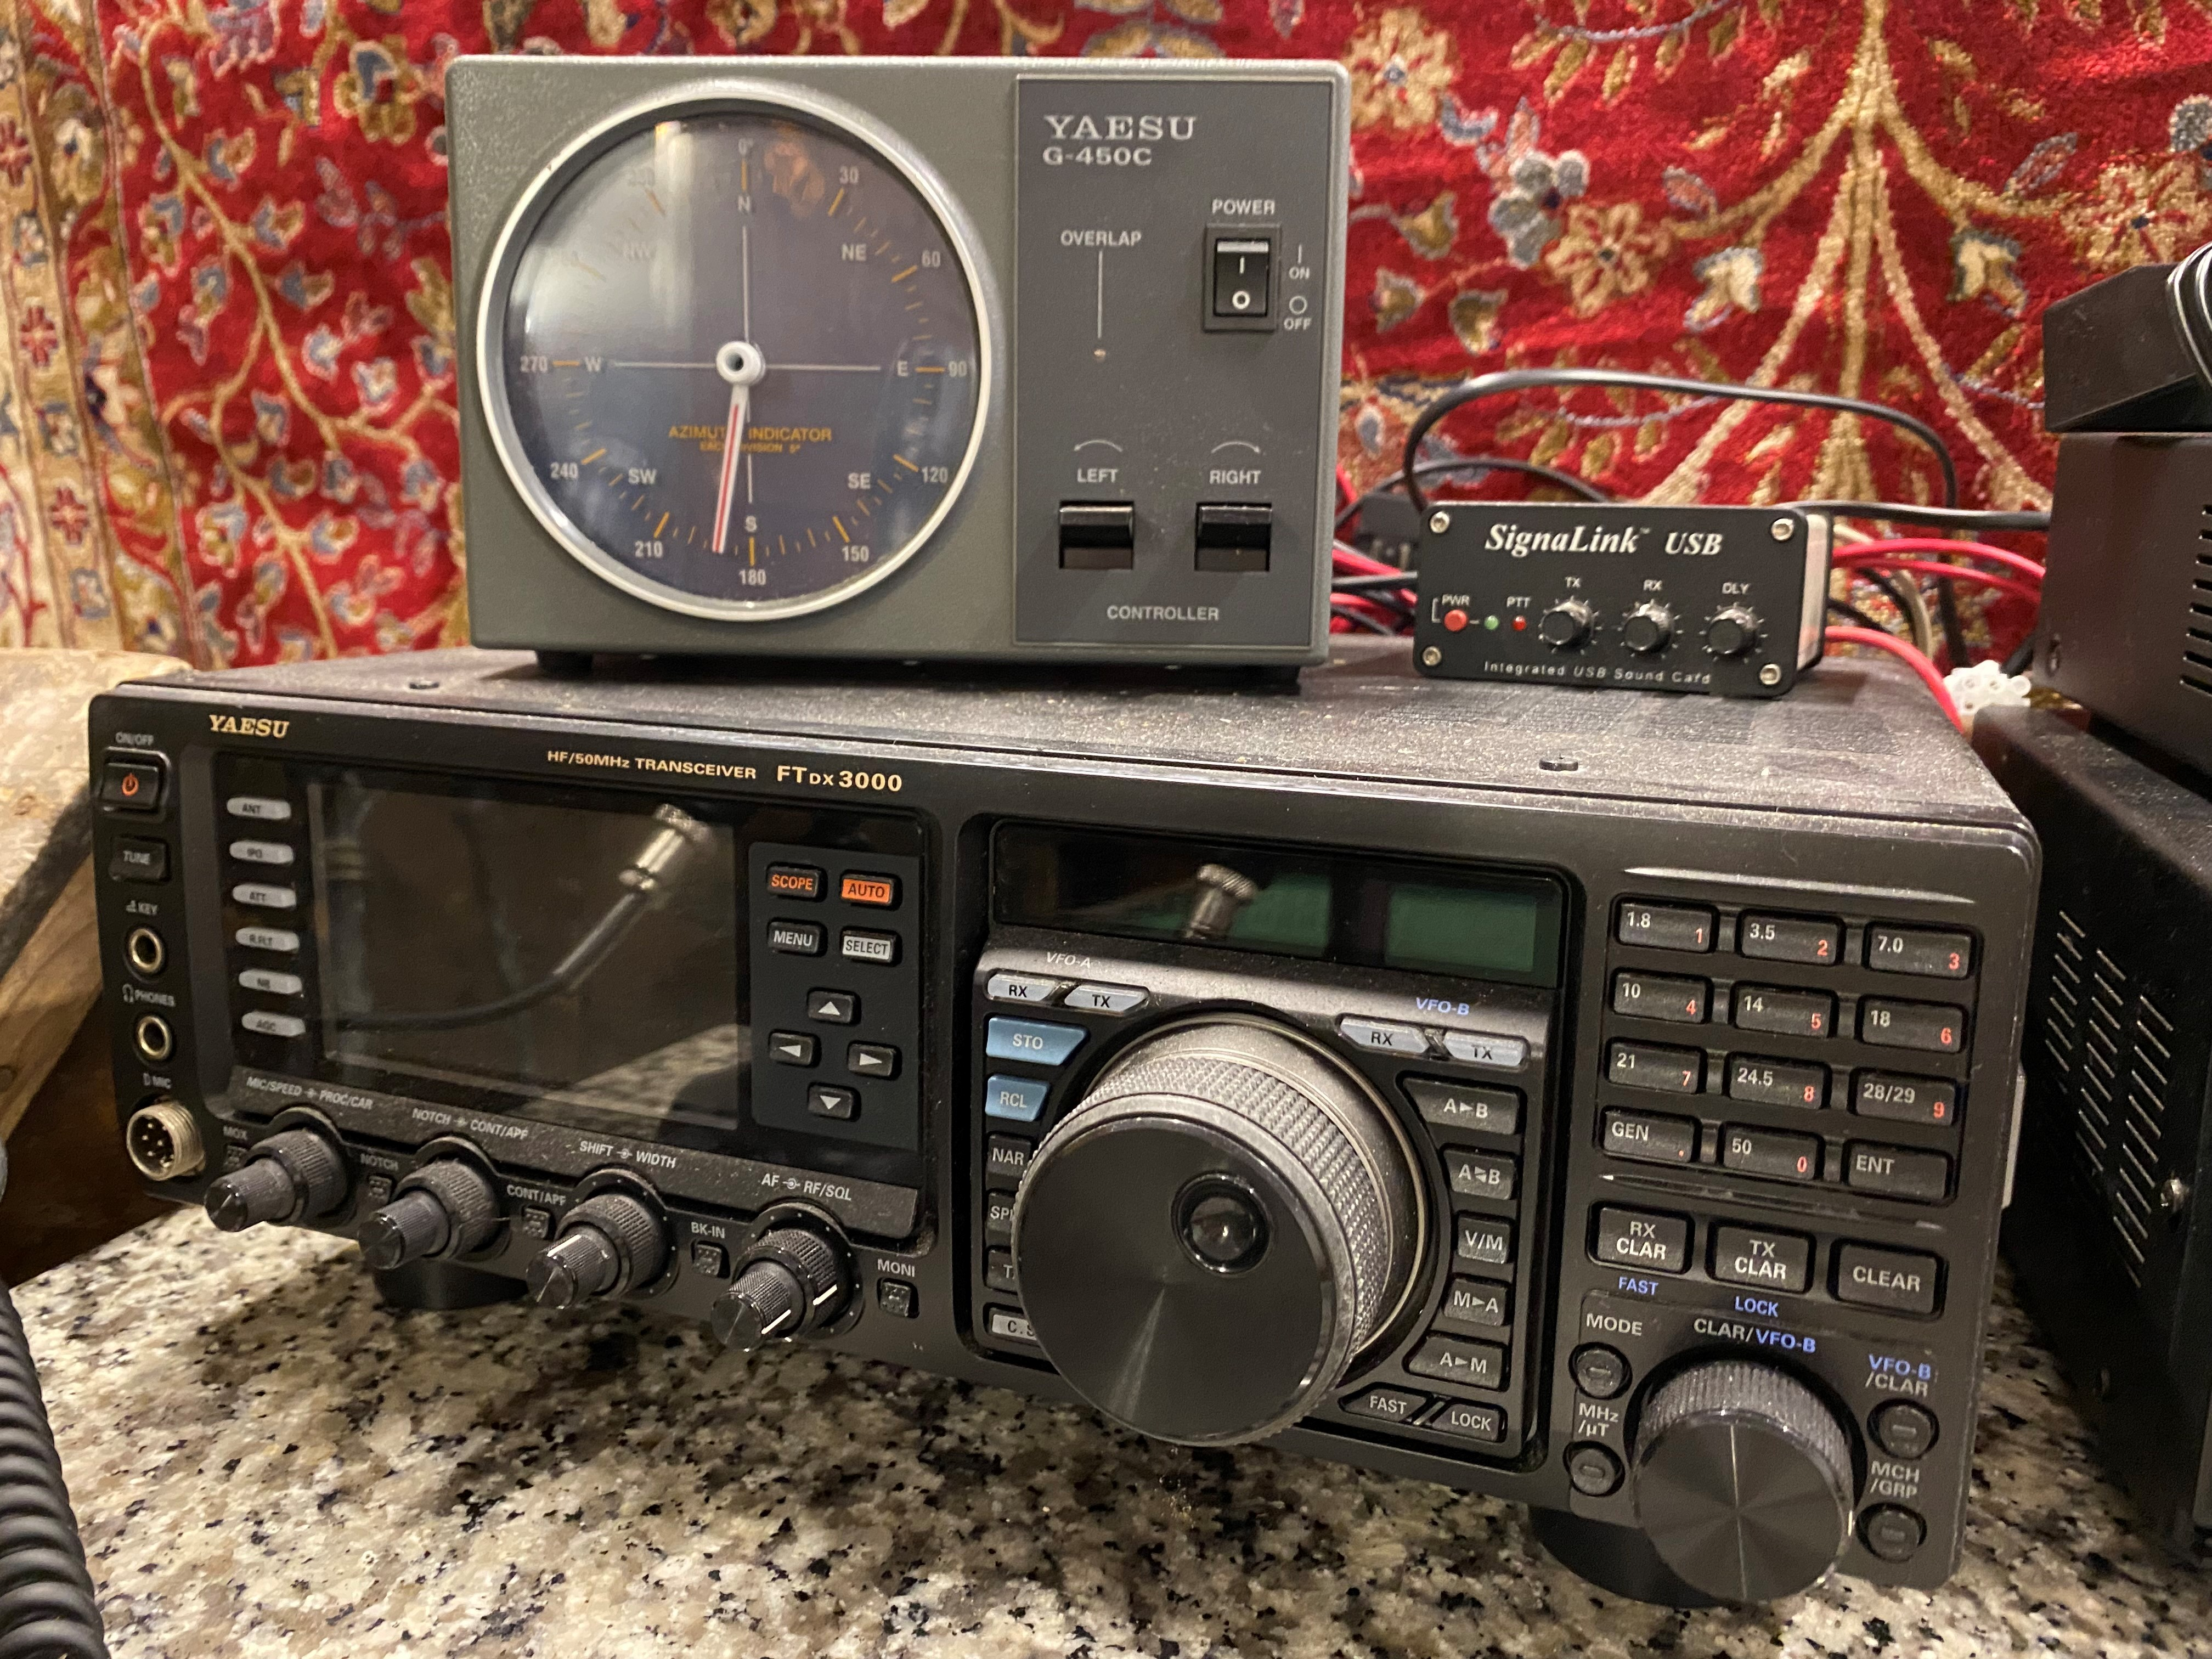 A collection of amateur 'ham' radio equipment, comprising: a Yaesu FTDX 3000 transceiver, an ATU 897 - Image 2 of 13